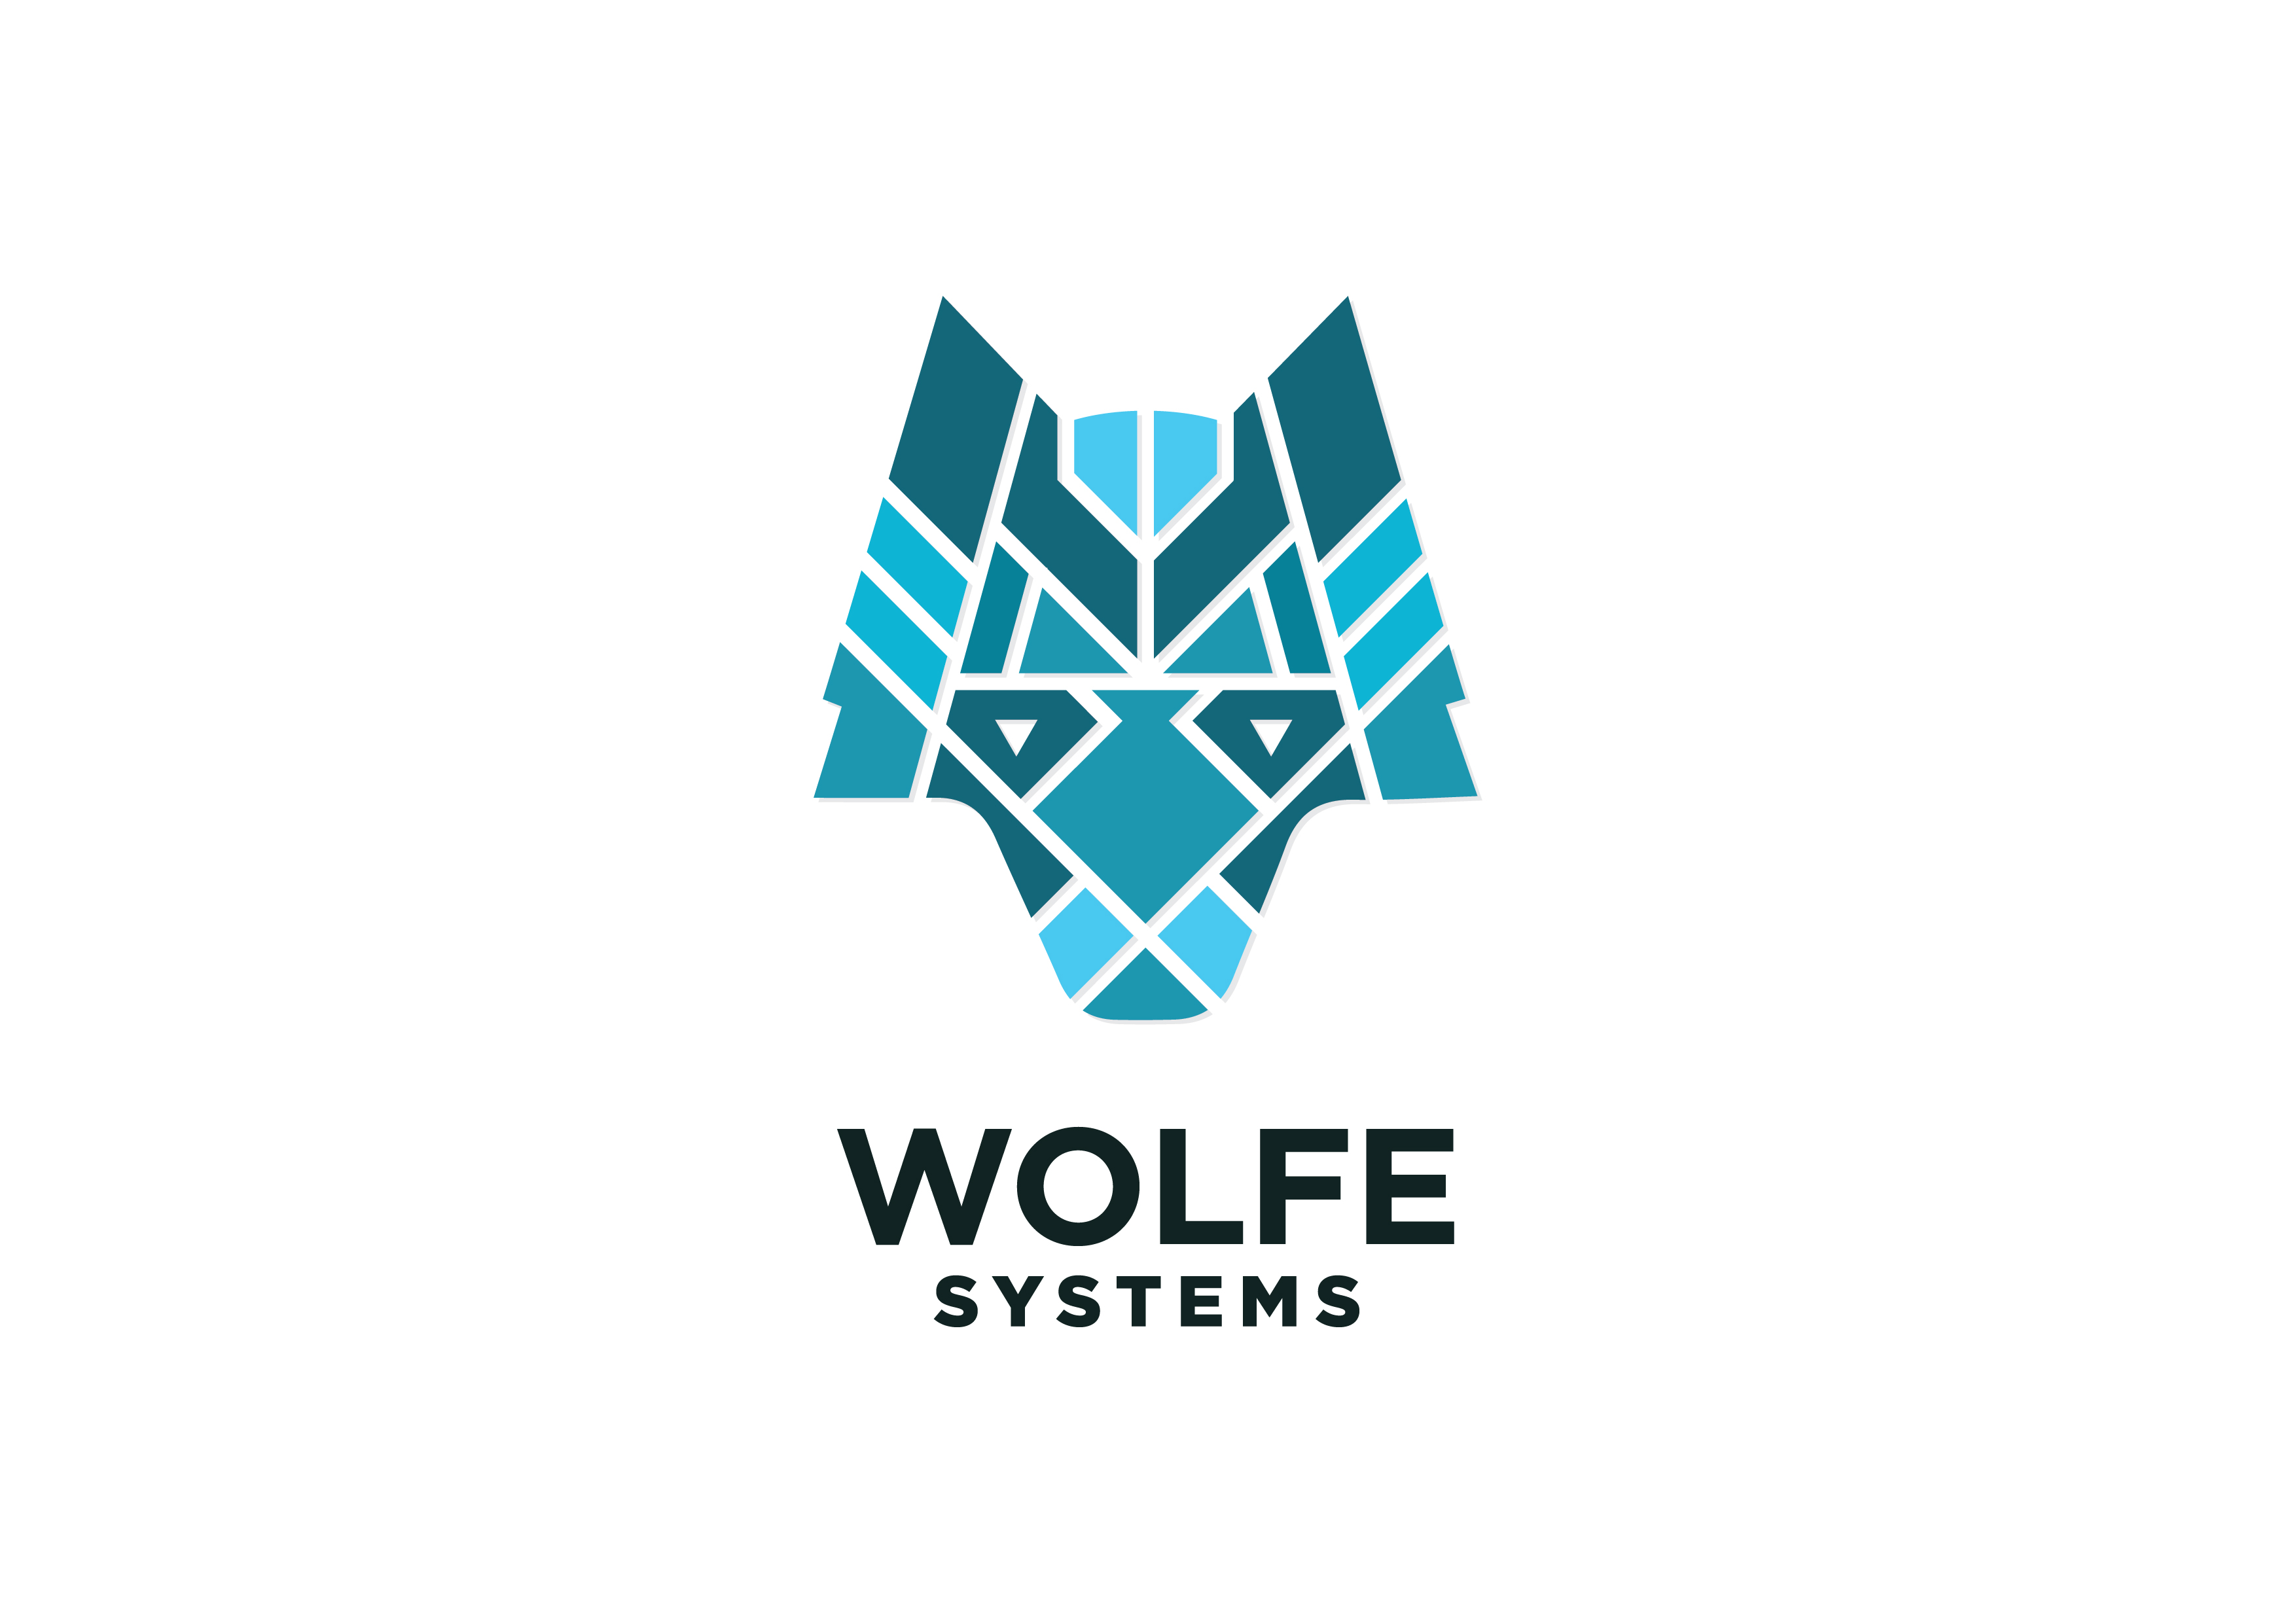 Wolfe_systems_logo